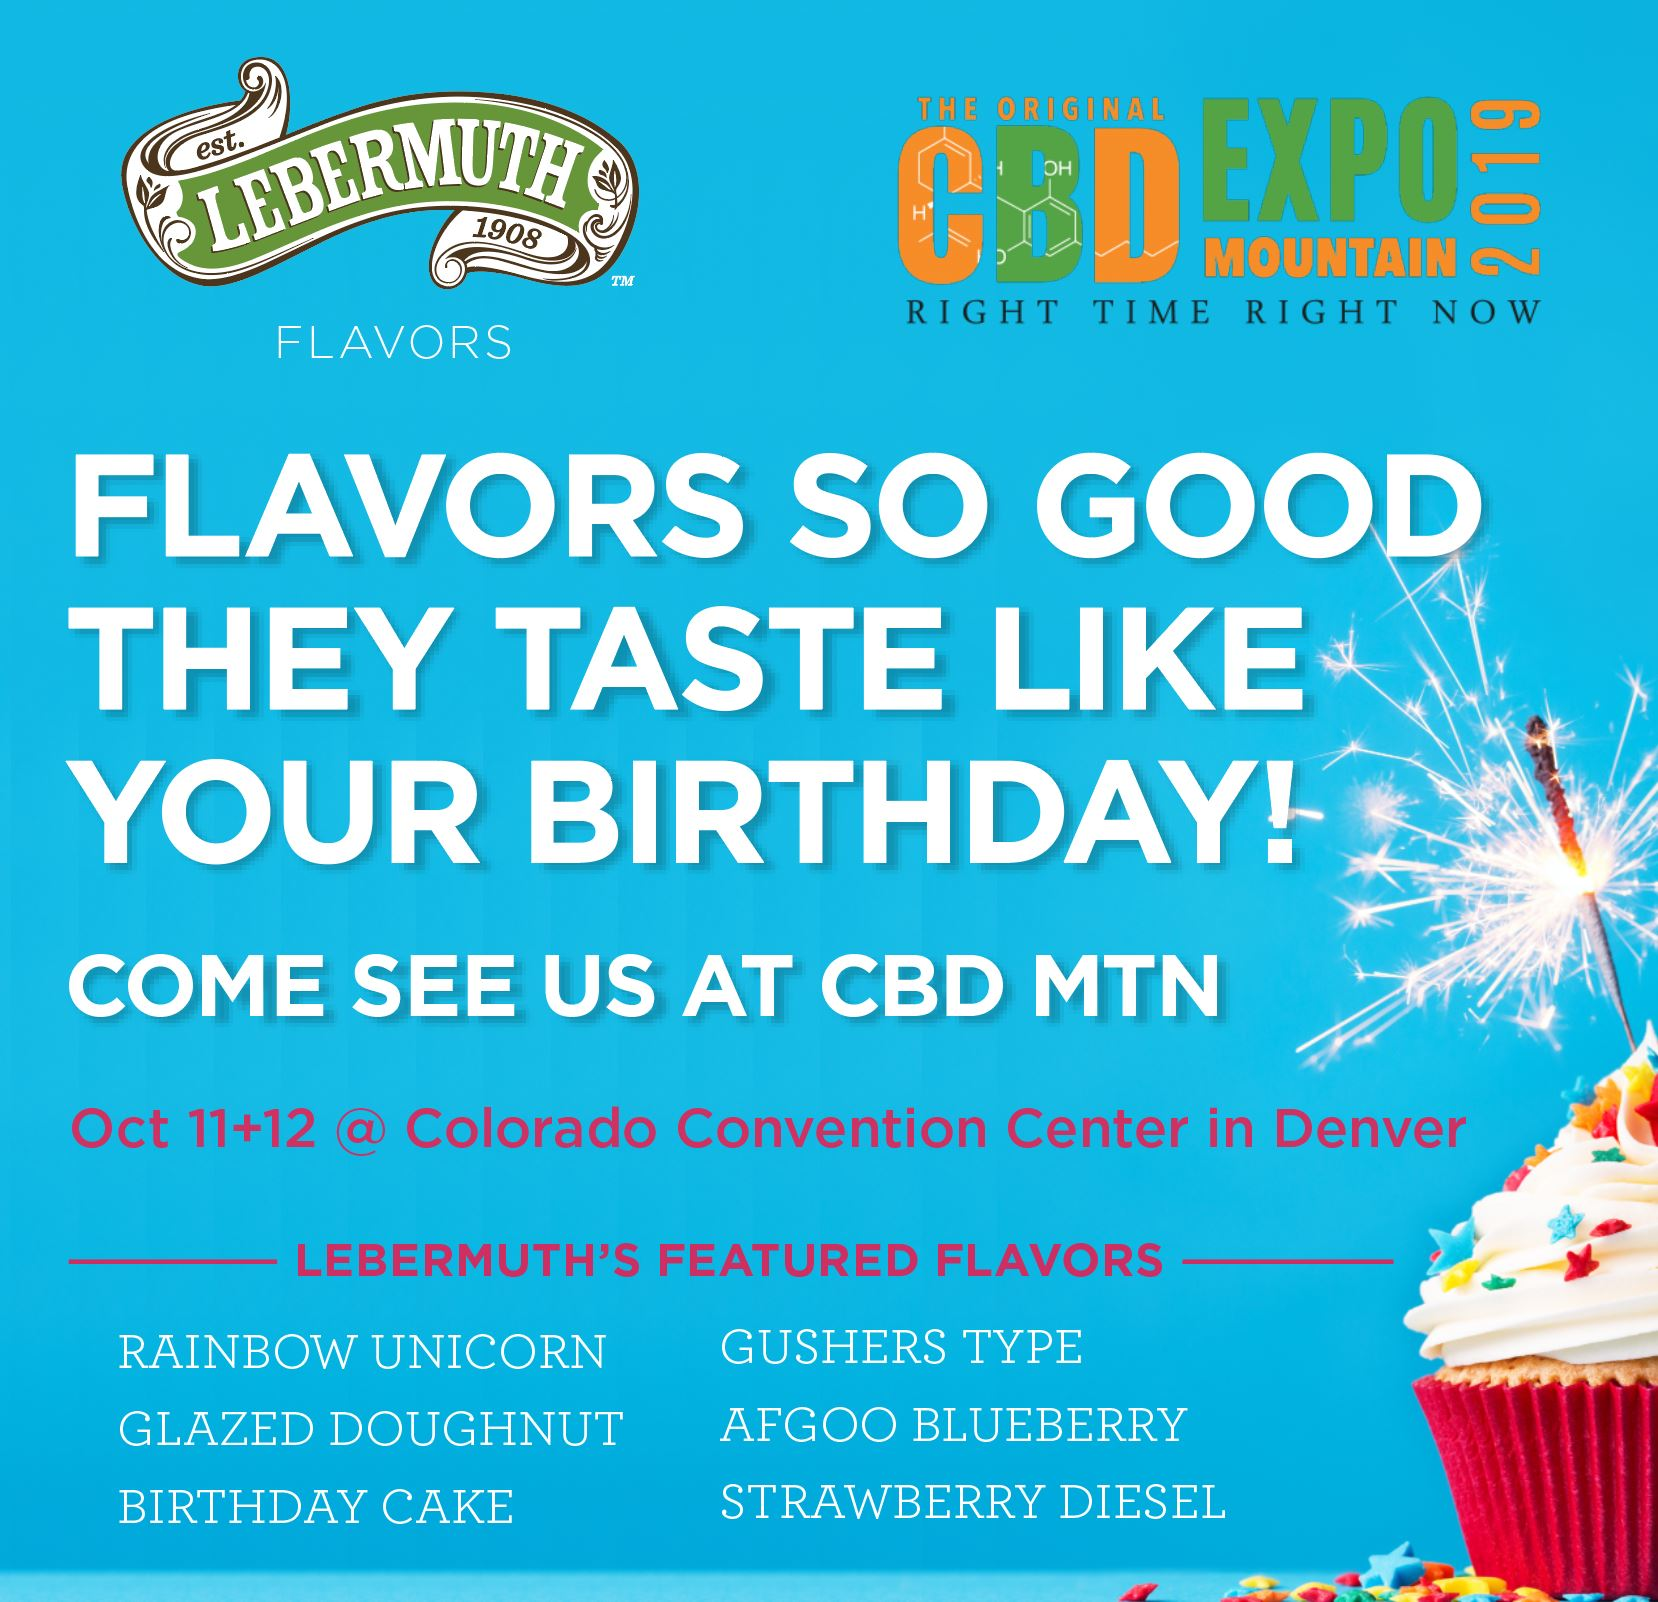 Come see us at CBD Expo in Denver!